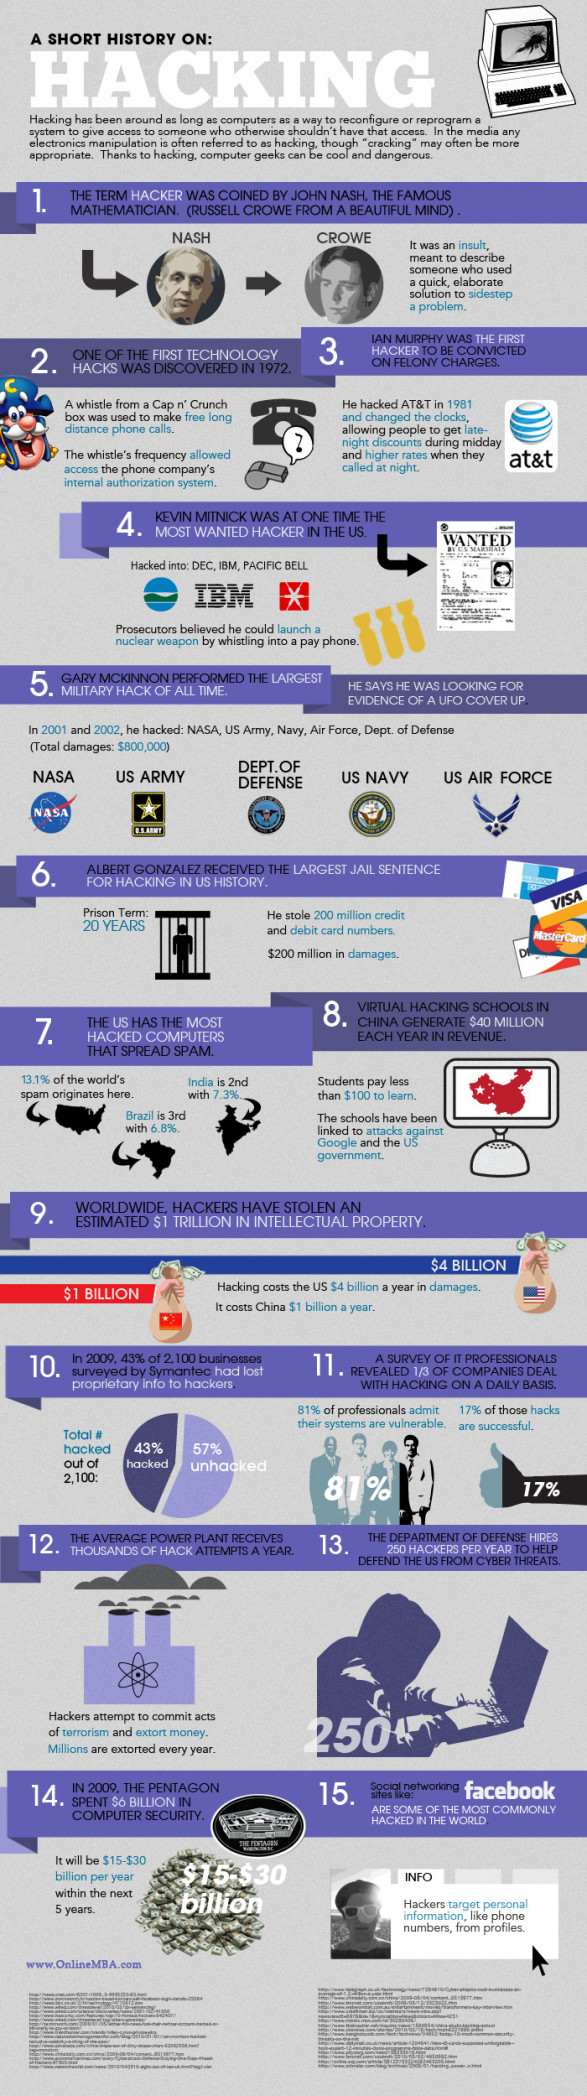 History Of Hacking [Infographic] A-short-histoy-of-hacking_5029114bd04c6_w587